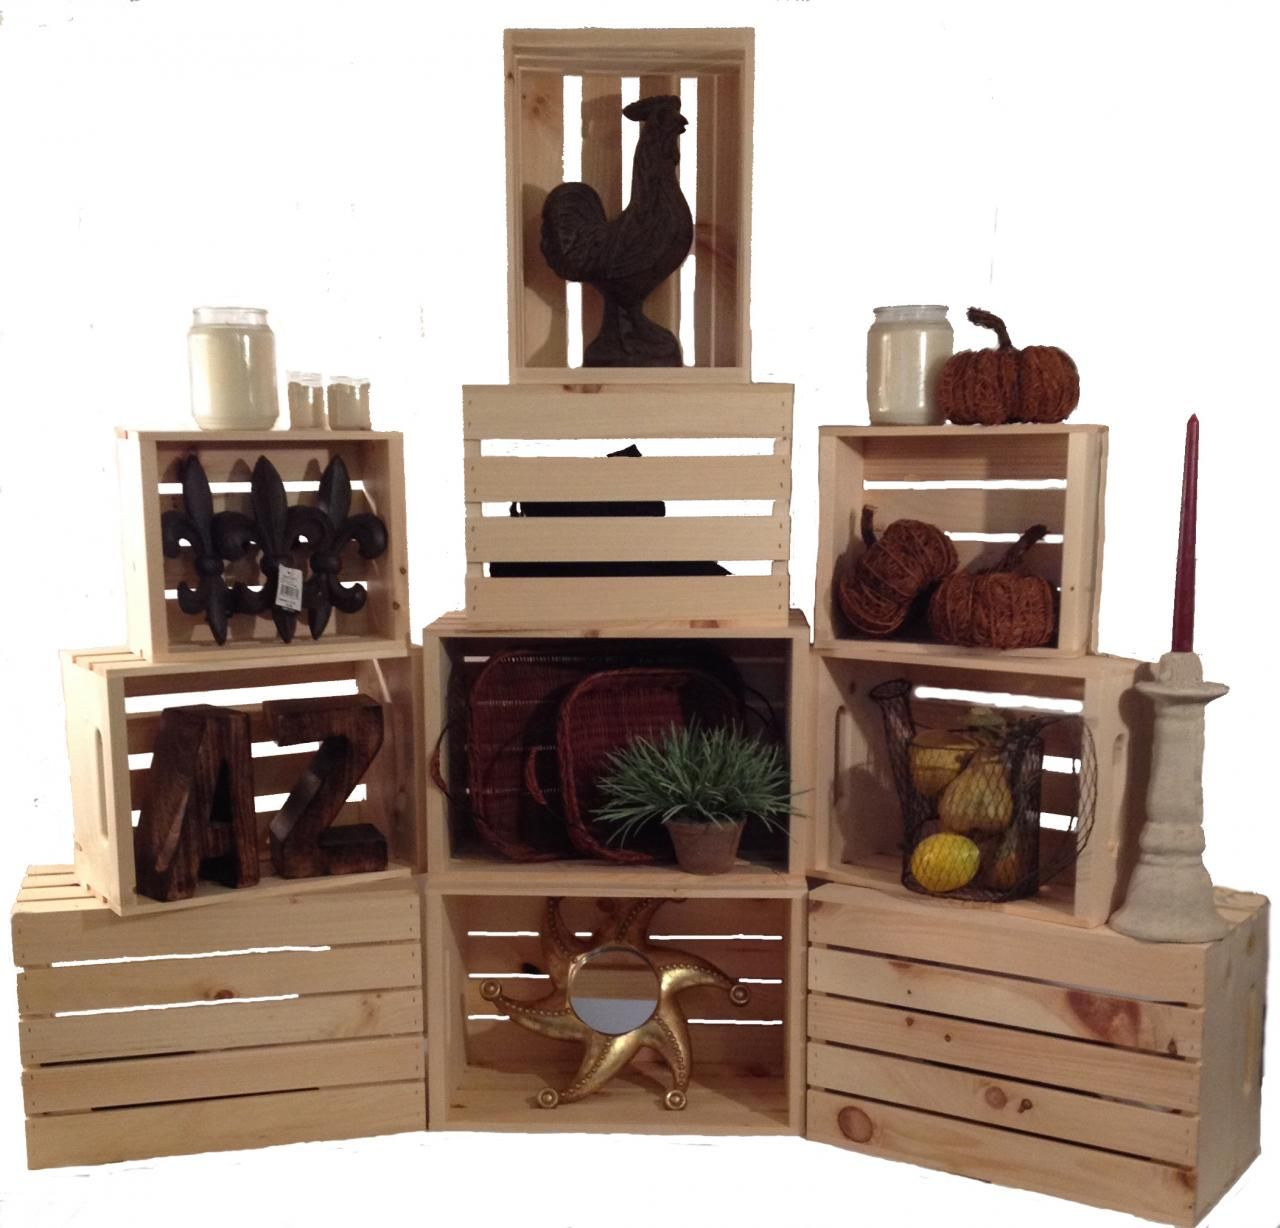 Rustic Stacking Crates Wood Retail Display Homegoods Giftshop General Store Retail Fixtures Stackable Crat Furniture Store Window Display Shelves Wood Display